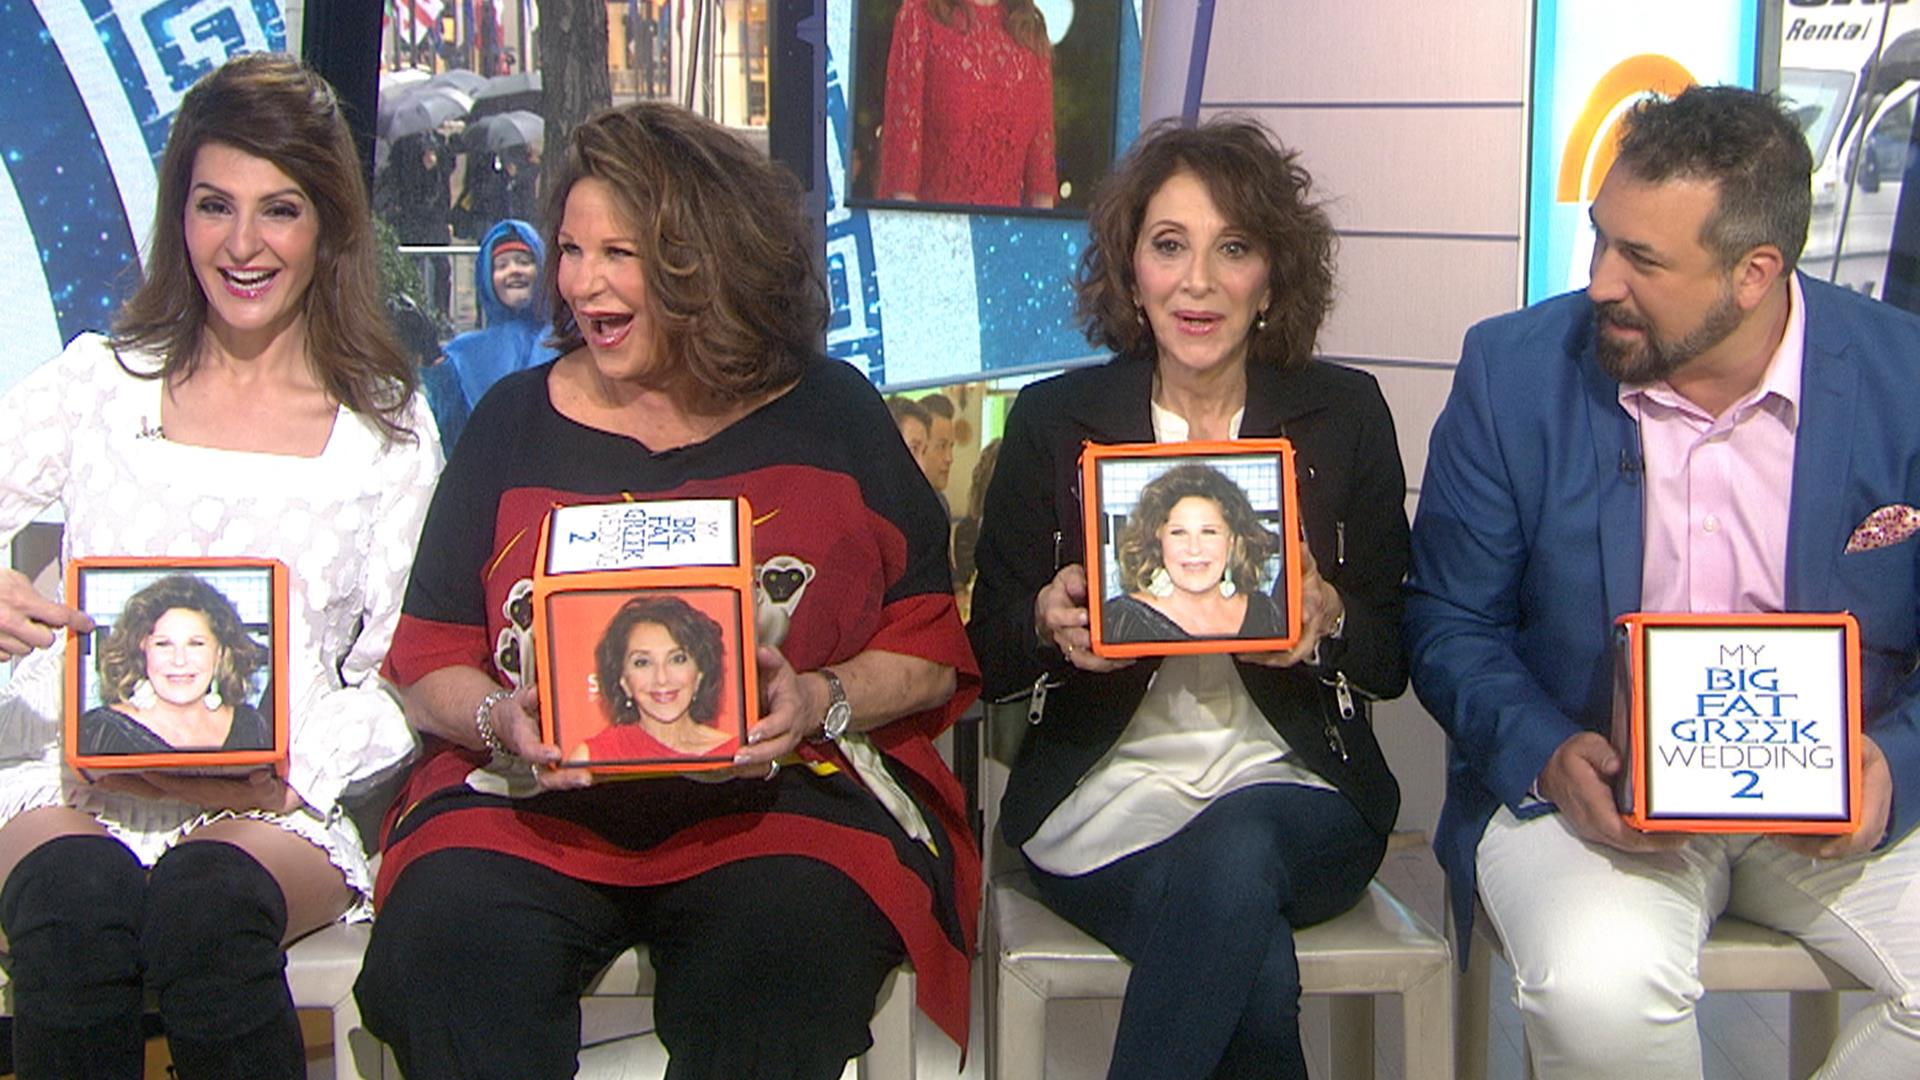 My Fat Greek Wedding 2 Stars Reveal Who Made The Most Bloopers Nbc News